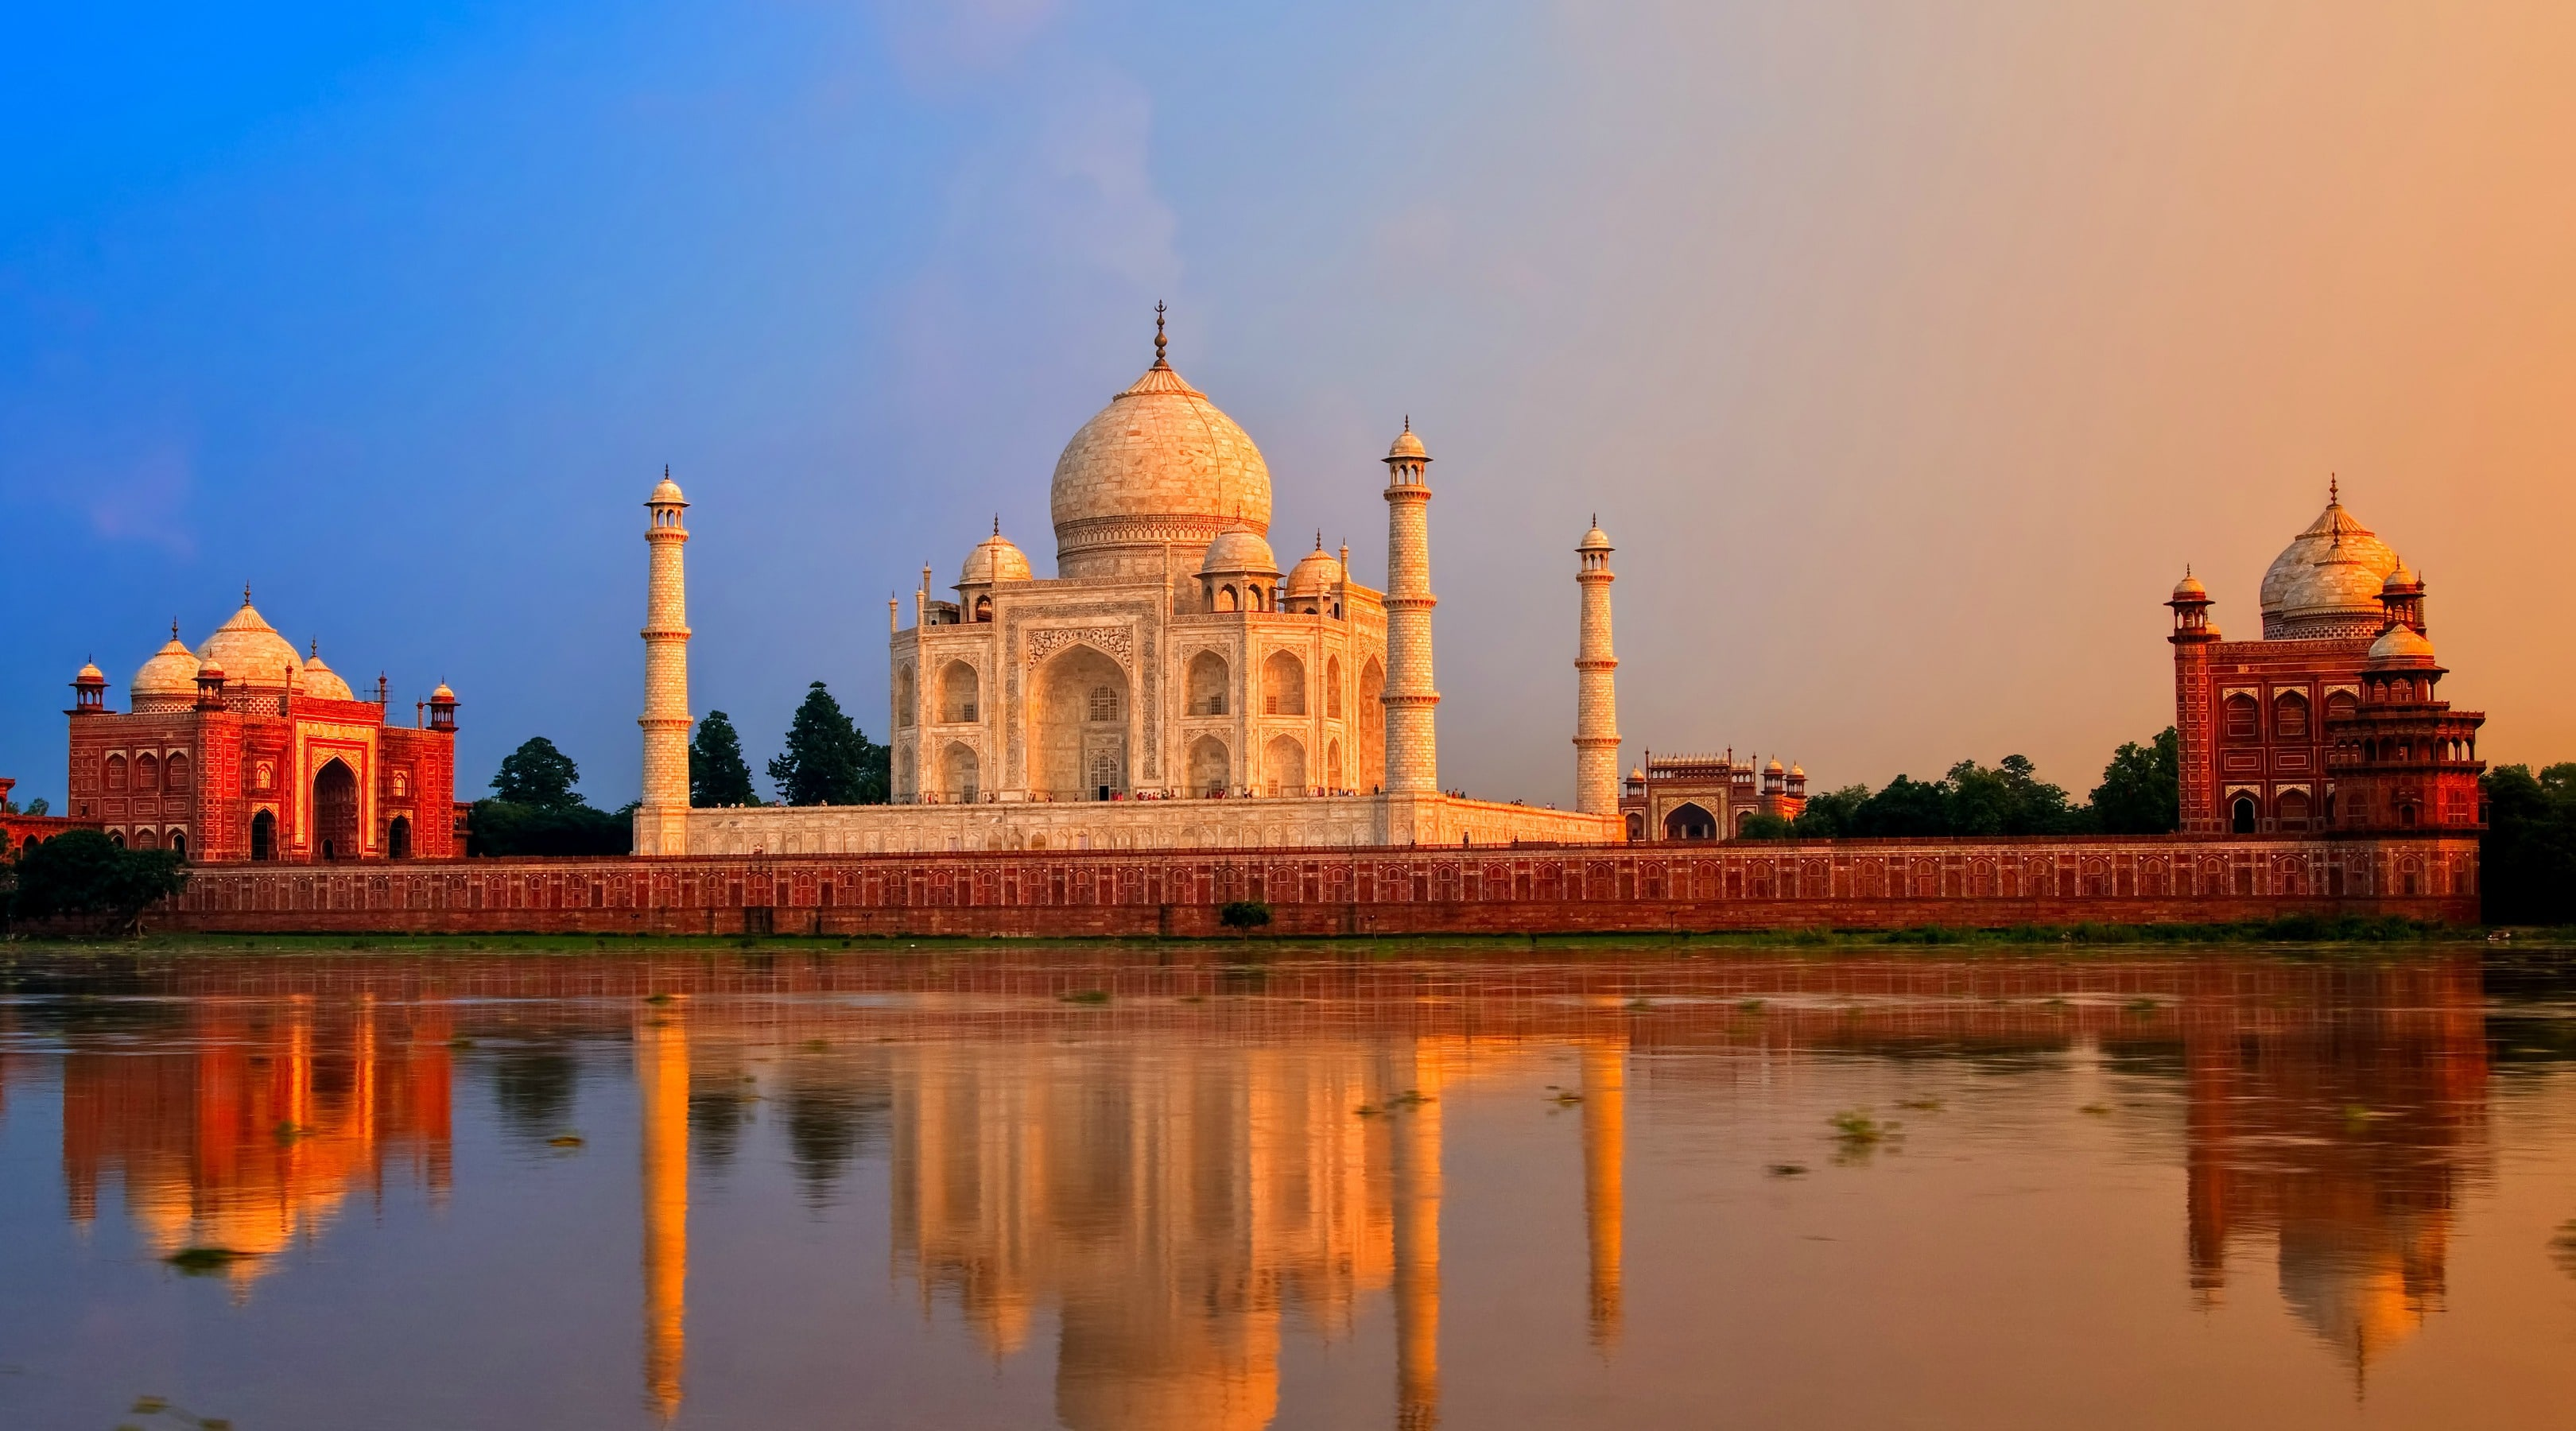 Sale Fares from US to India on Etihad